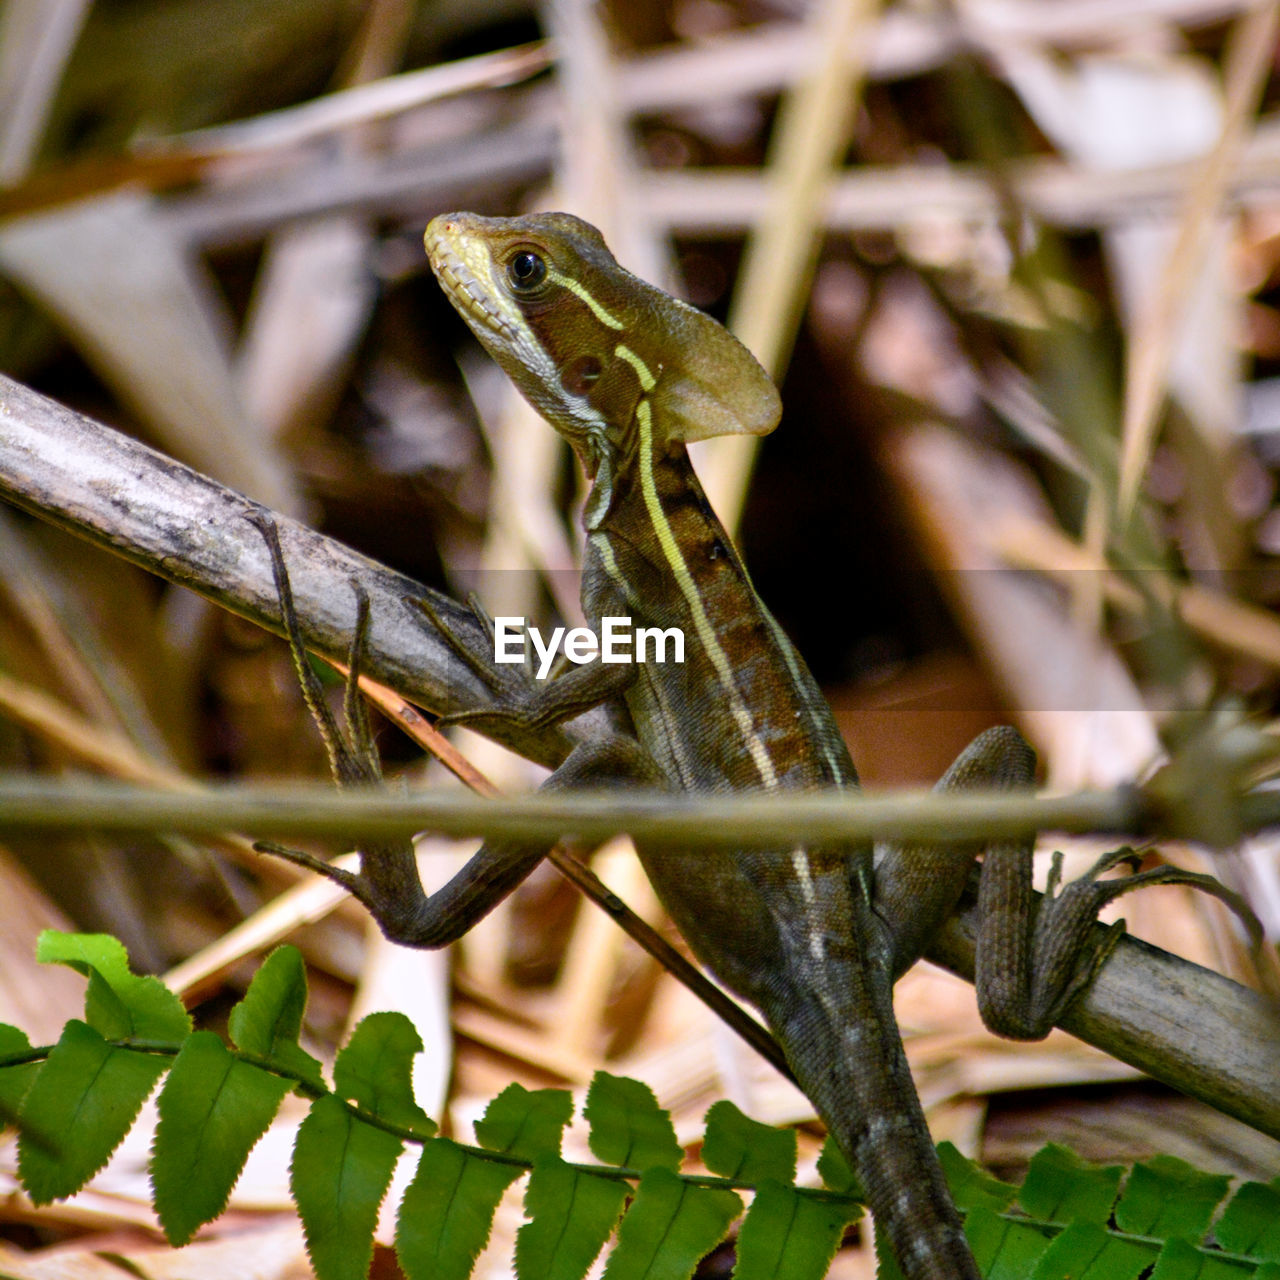 animal themes, animal, animal wildlife, animals in the wild, vertebrate, one animal, plant, reptile, nature, no people, close-up, day, plant part, lizard, selective focus, leaf, branch, focus on foreground, outdoors, tree